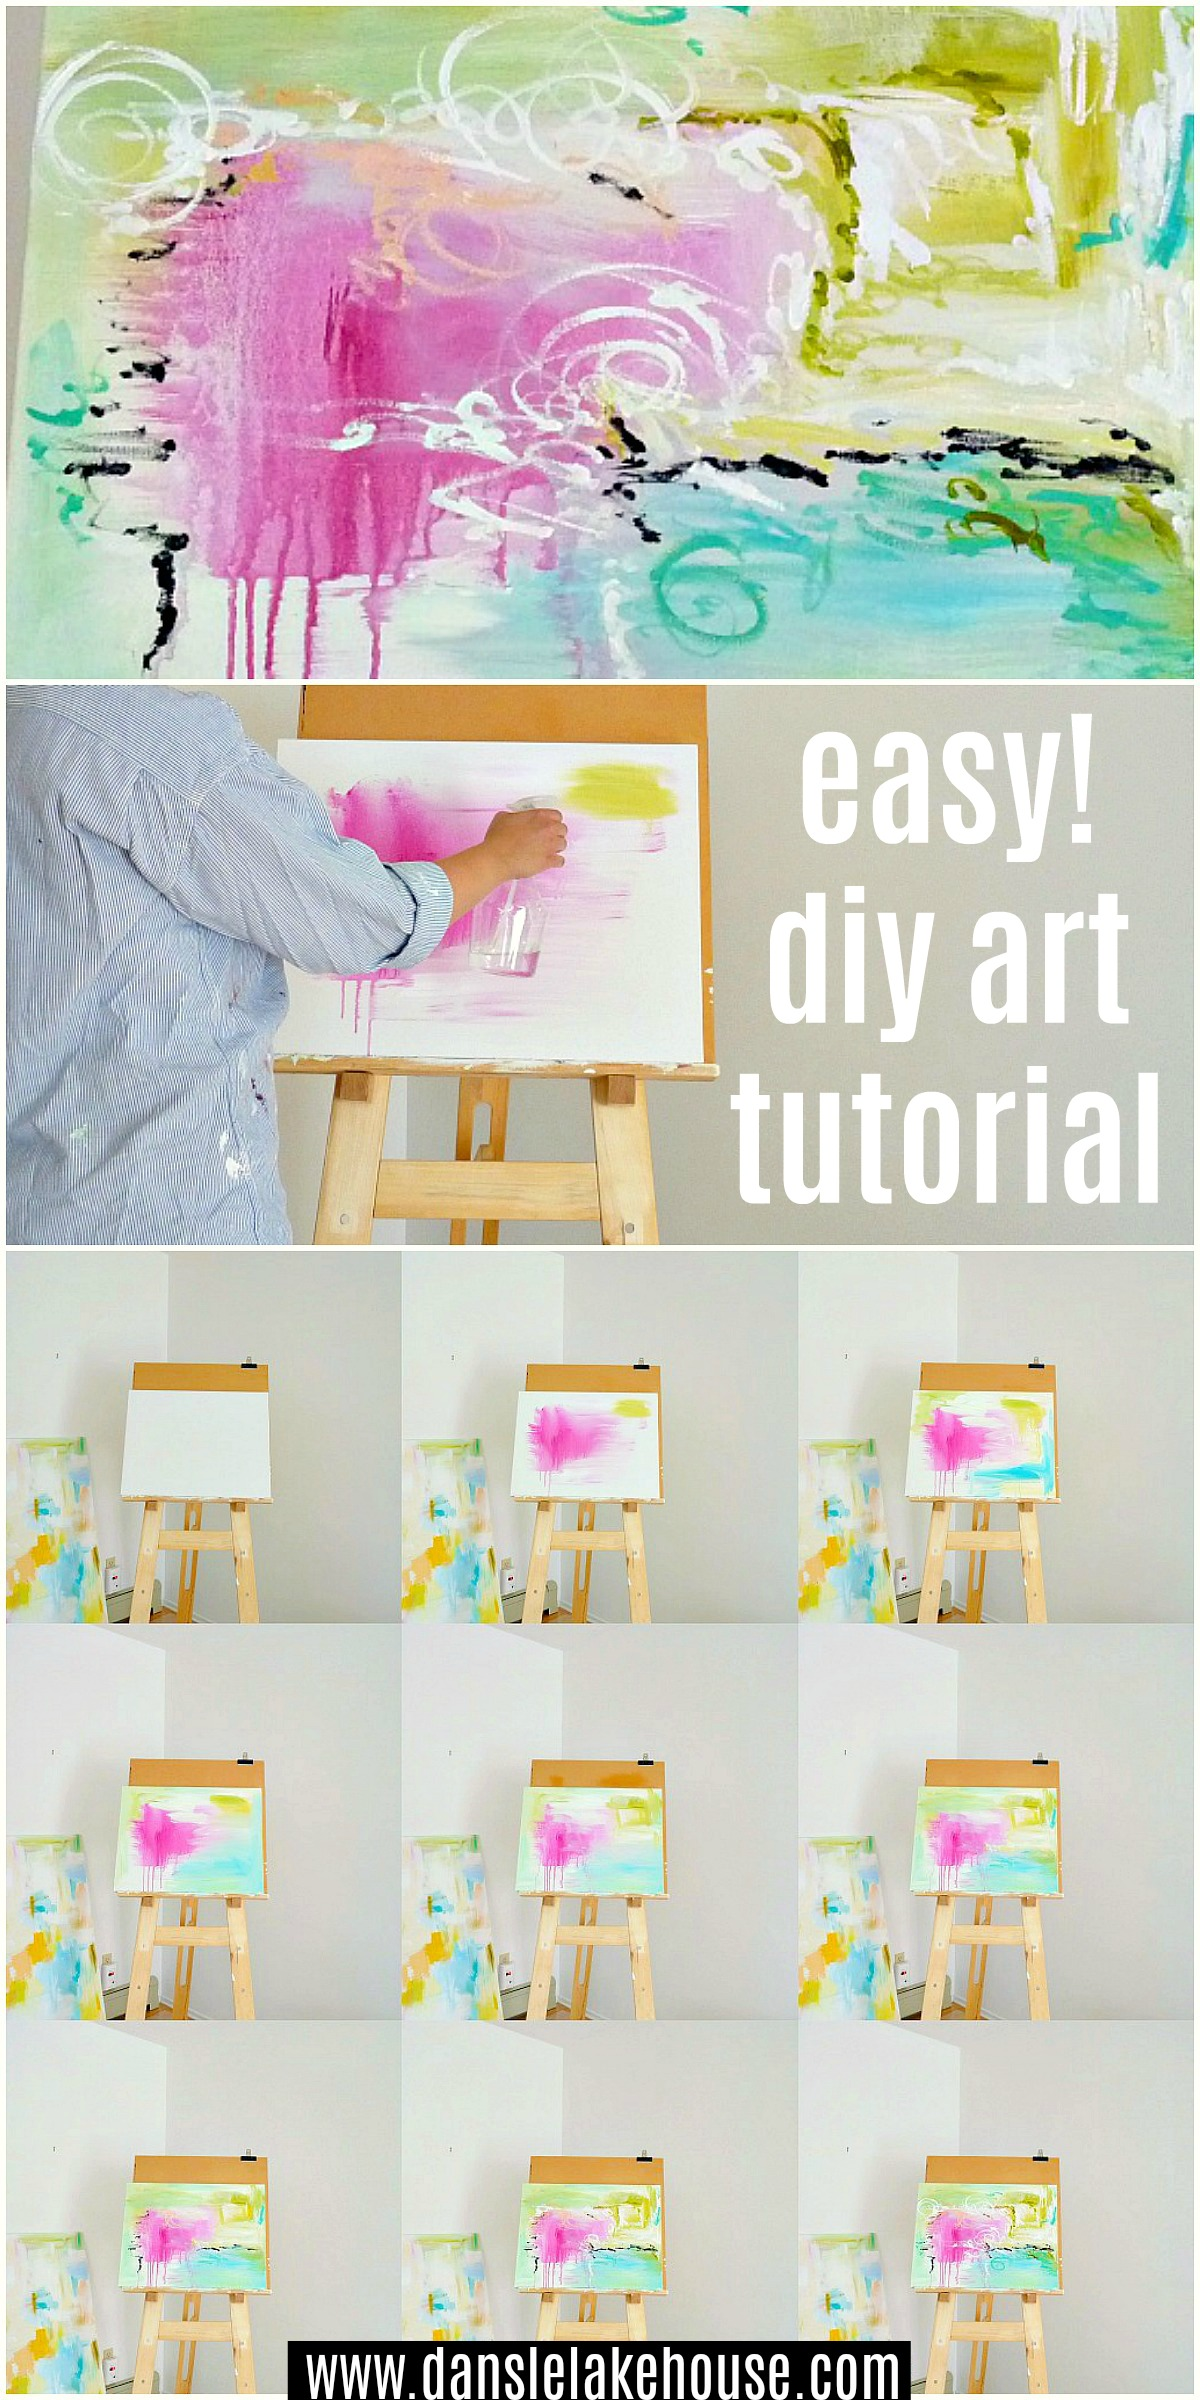 Easy DIY Abstract Art Tutorial with Step by Step Instructions with Photos